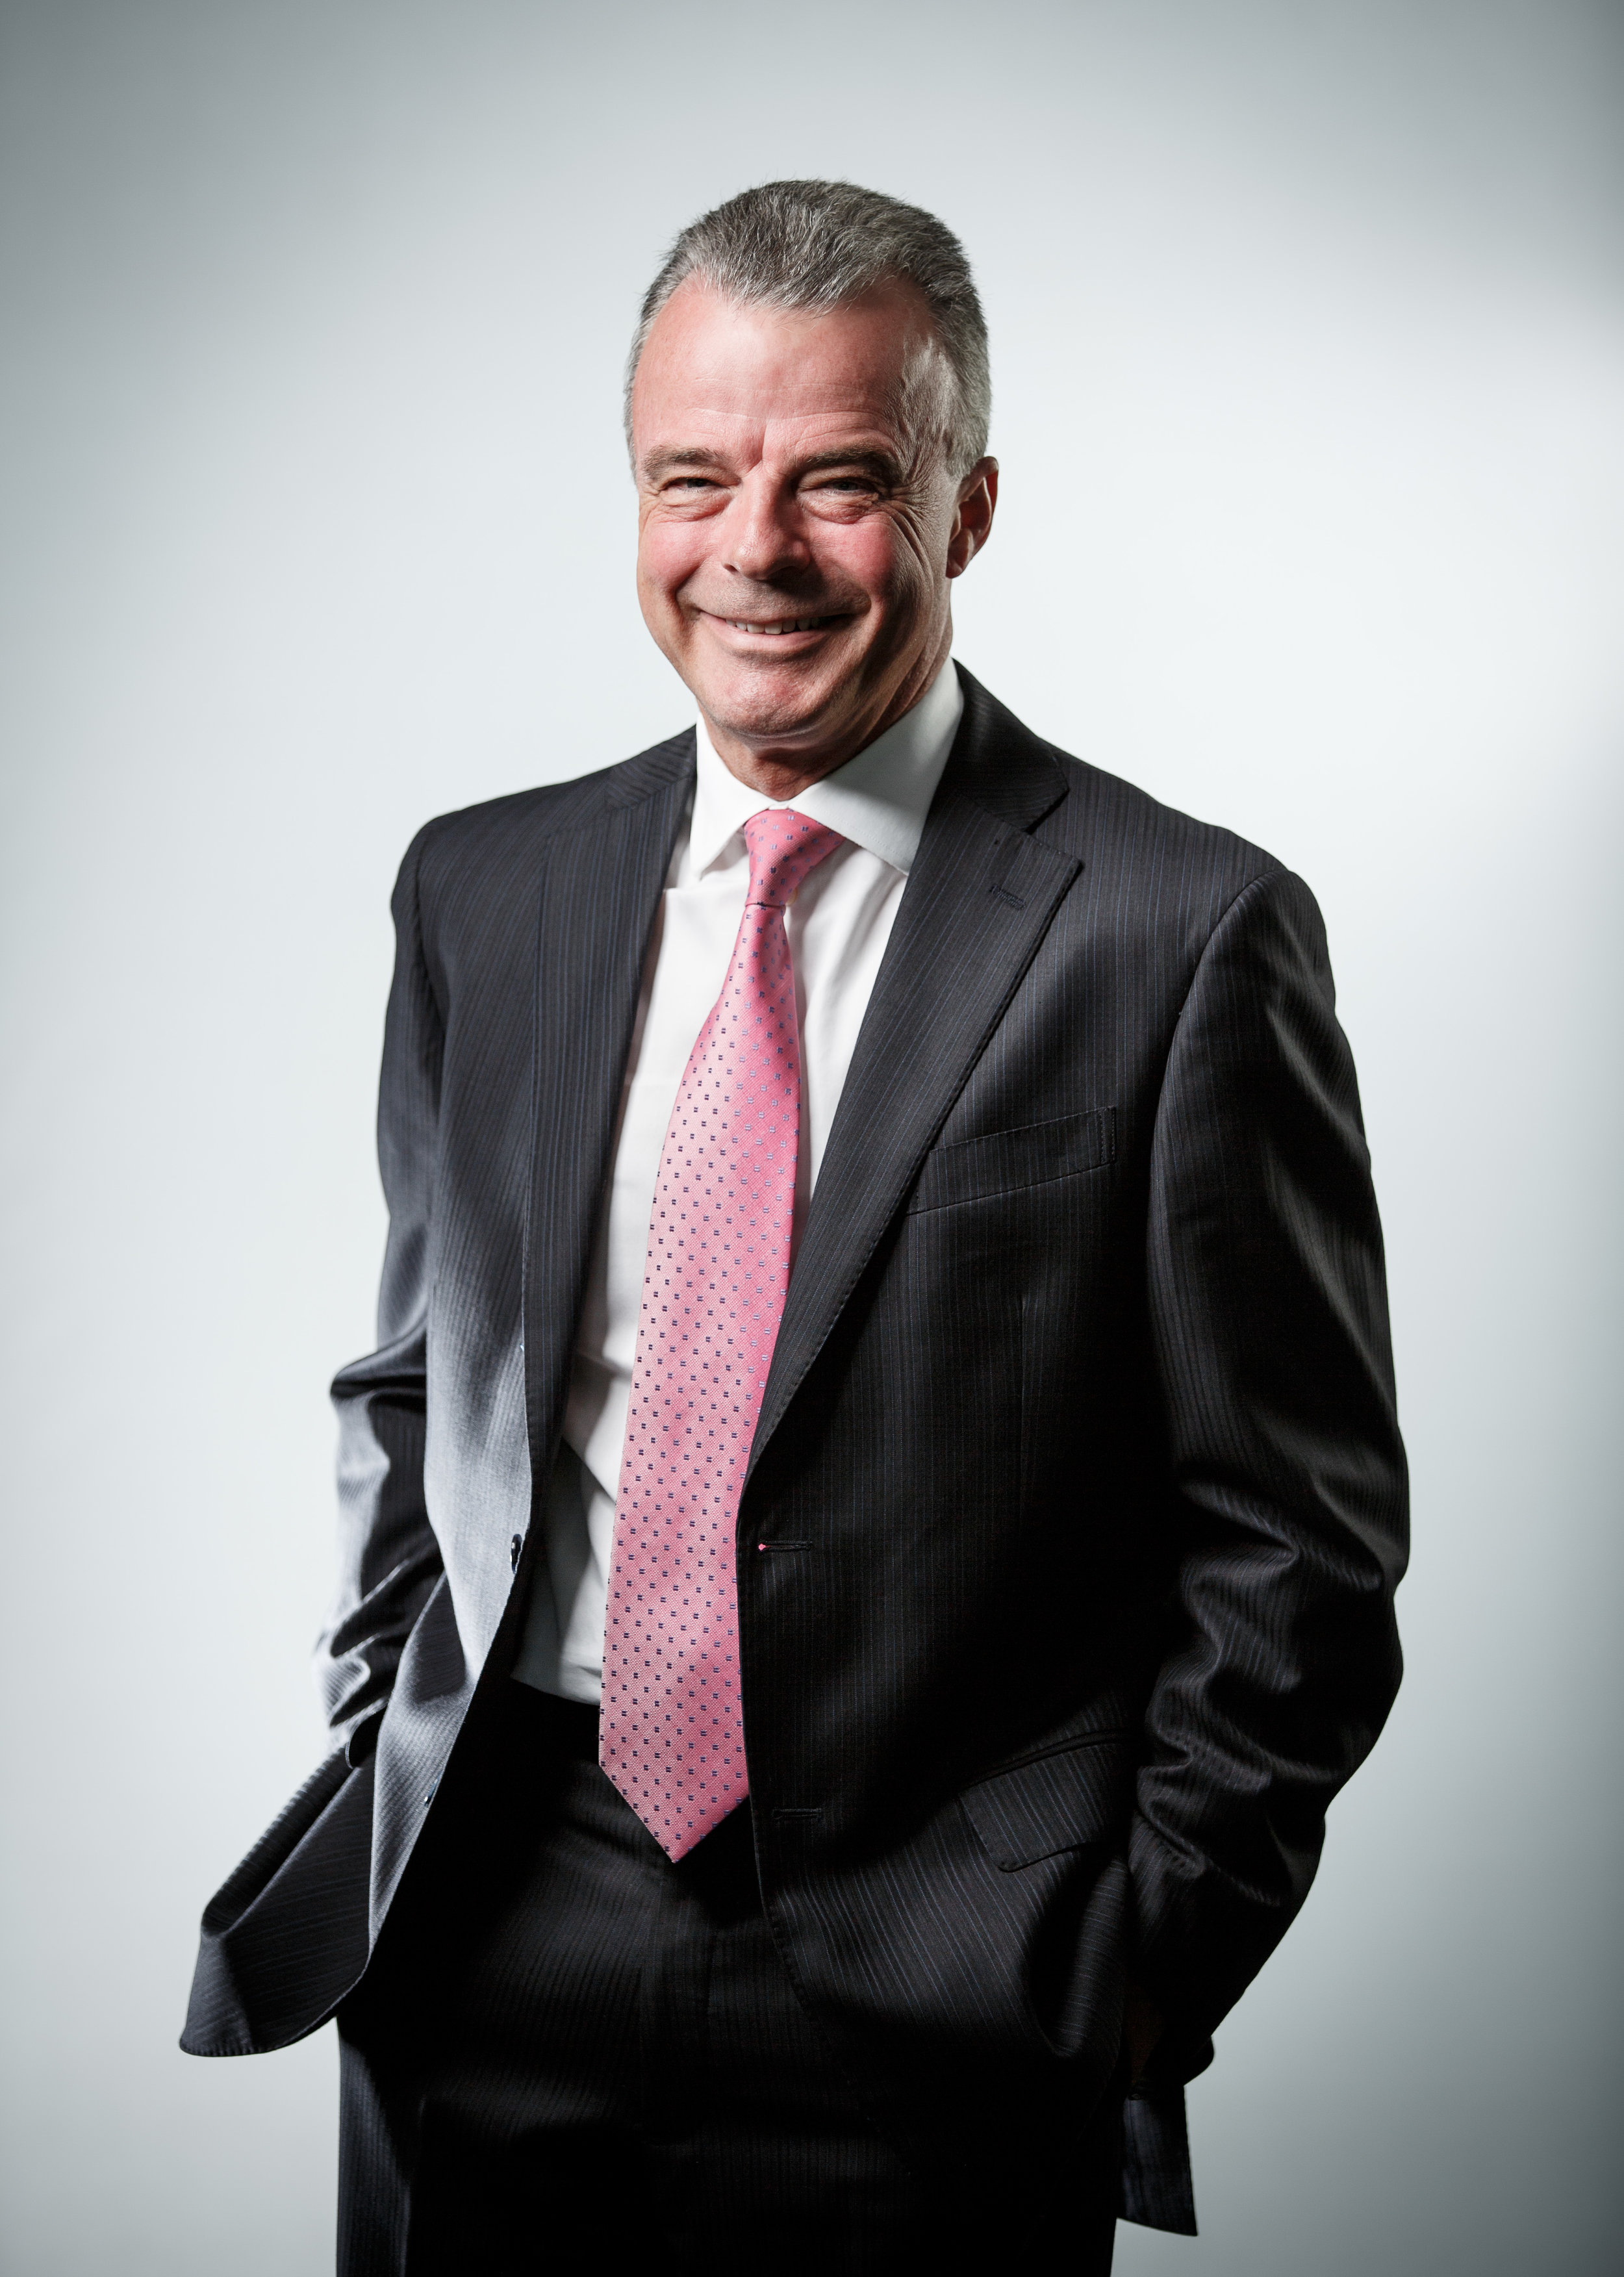 Brendan Nelson portrait photograph wearing a suite and smiling at camera with pink tie